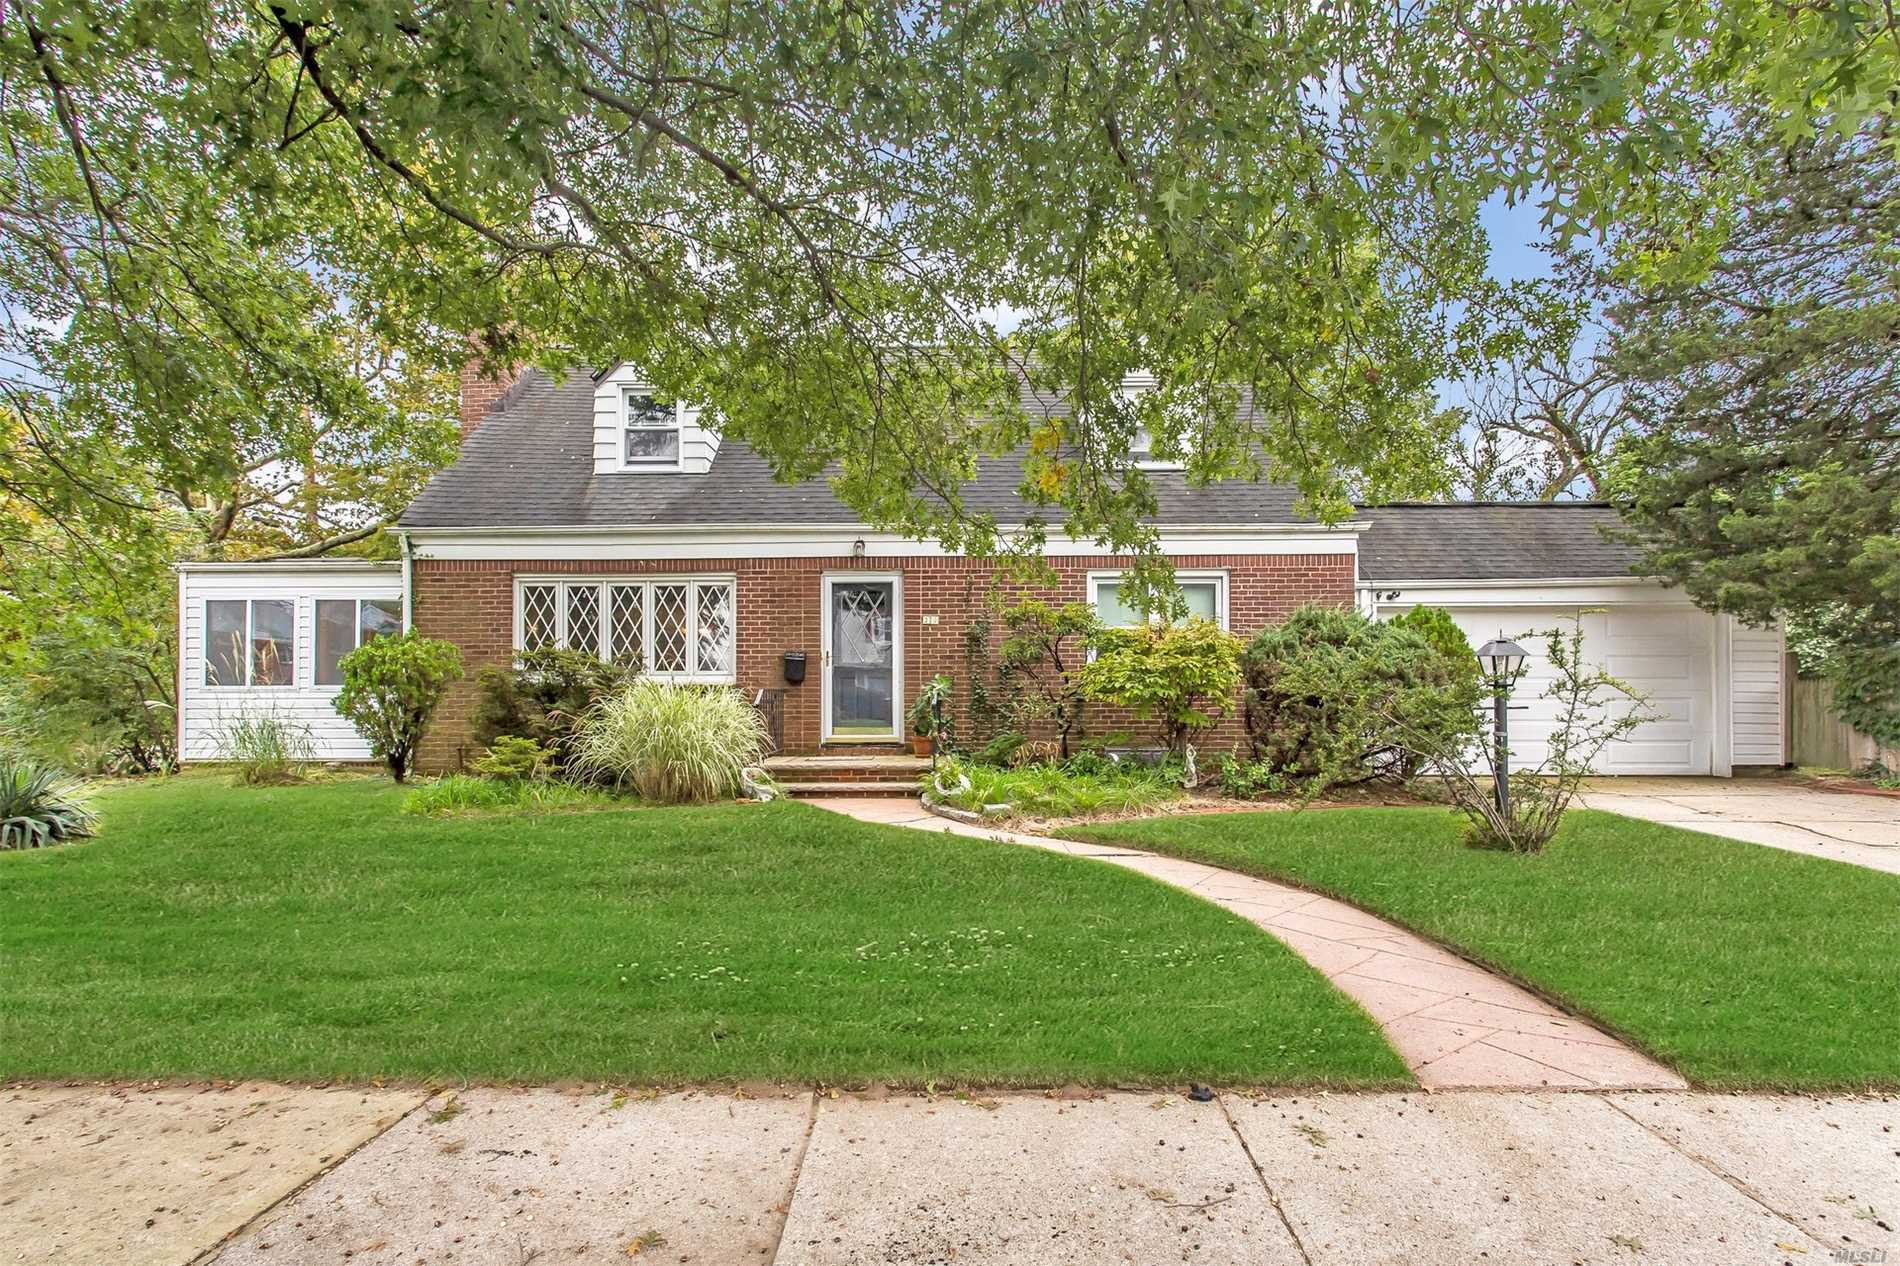 Spacious Well Kept Cape, Features 4 Bedrooms , 2Full Baths, Living Room, Formal Dining Room, Eat In Kitchen, Beautiful Den With Skylights Great Size Backyard. Attached Car Garage With Private Drive Way. Walk To Malverne Train Station & Town. Taxes are being grieved.